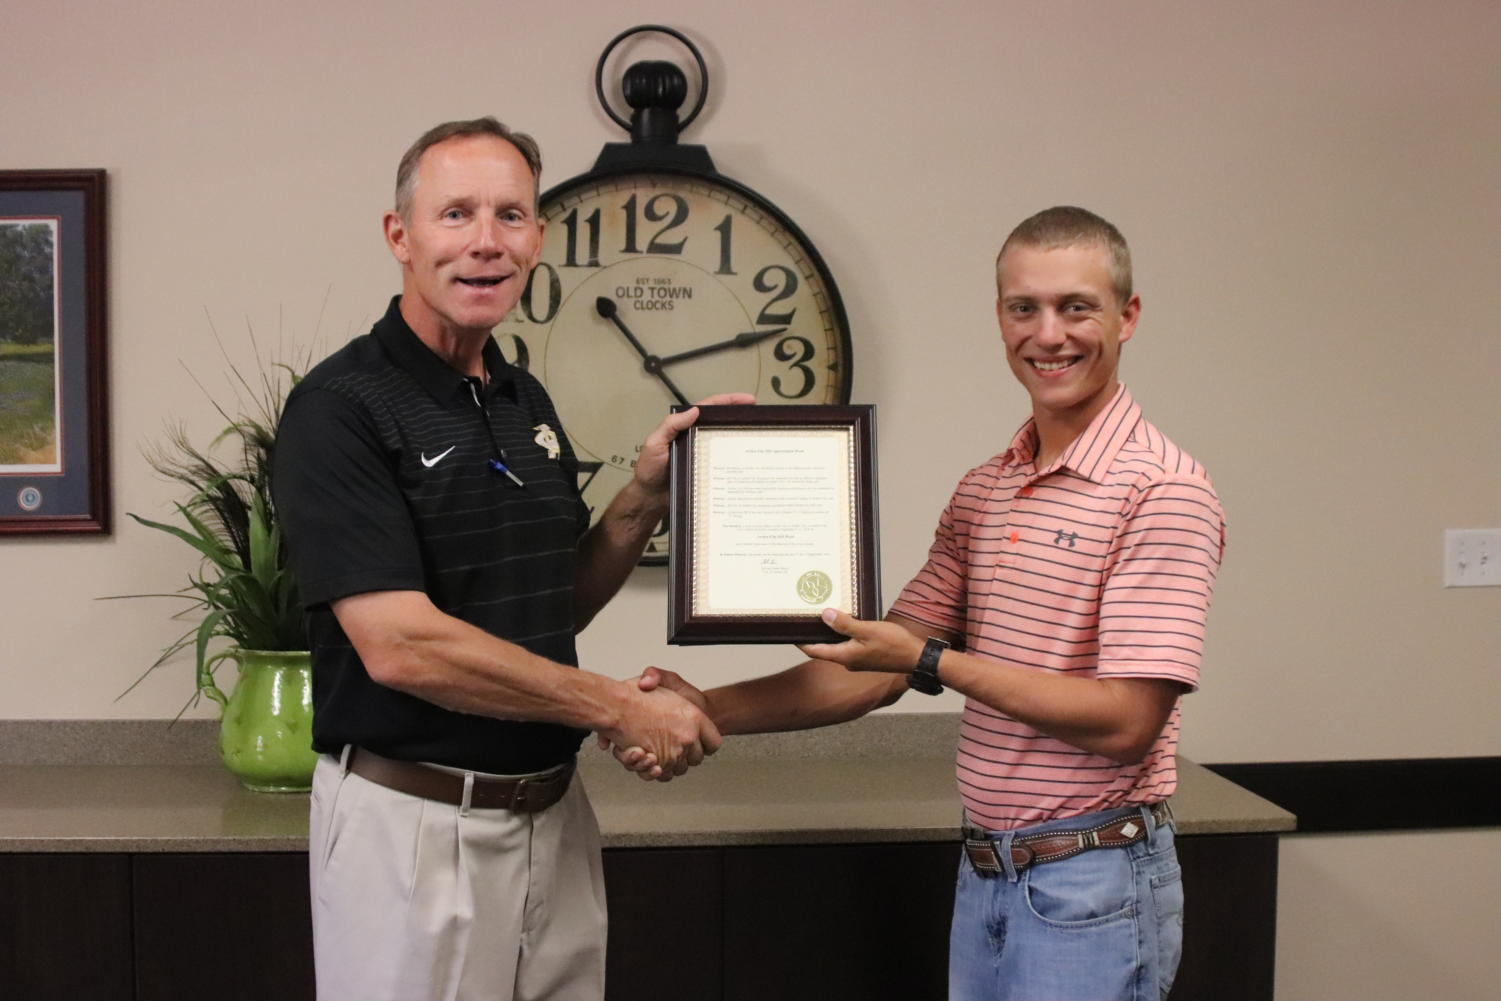 The City has issued a proclamation designating September 9-13 Archer City ISD Appreciation week for the outstanding ratings.